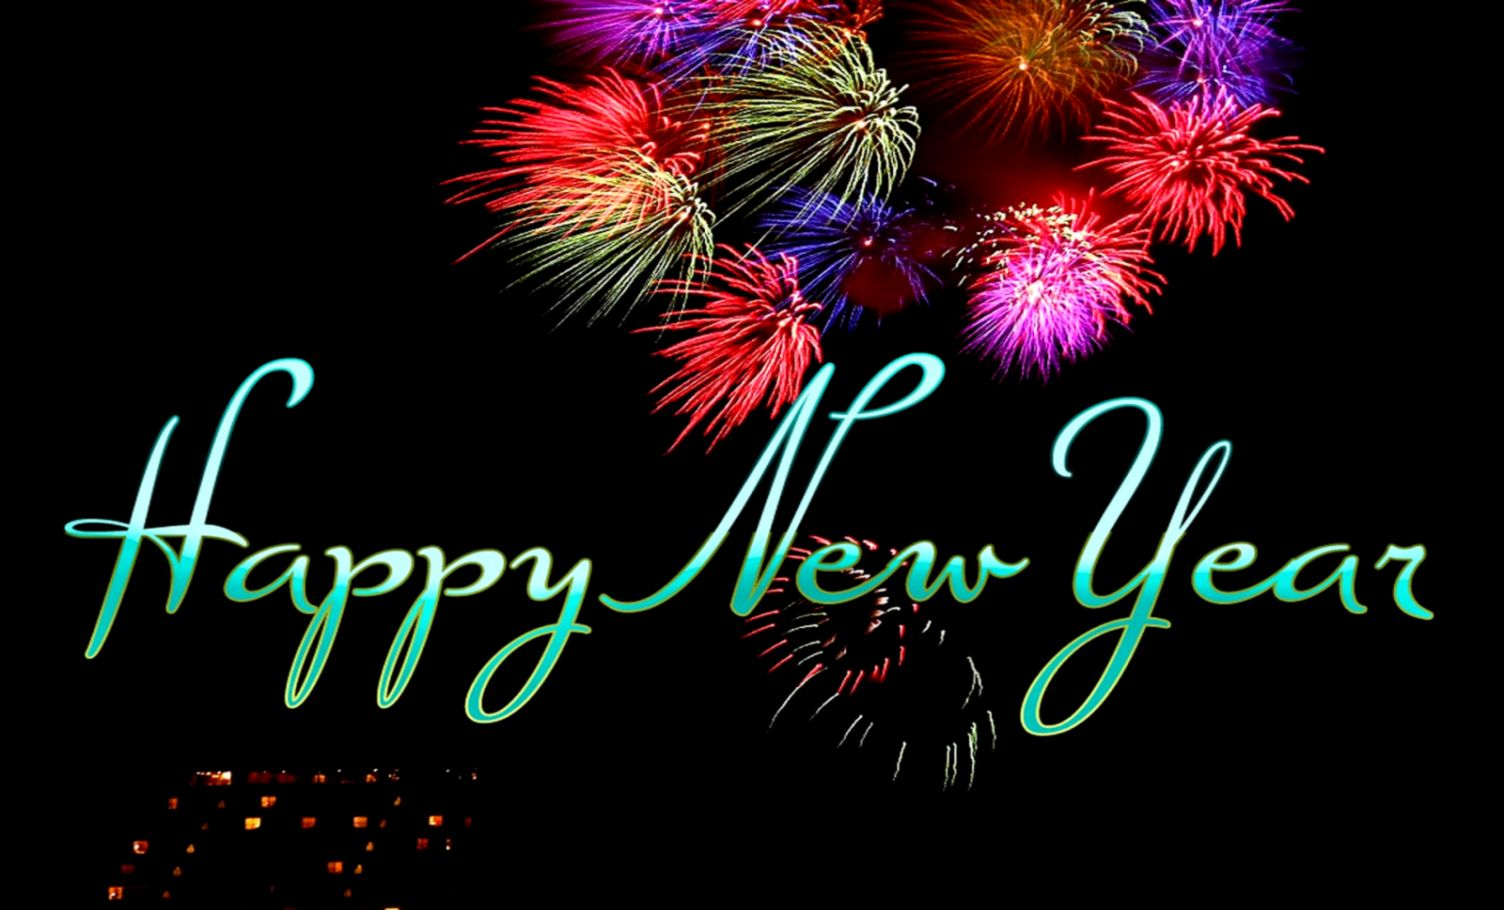 Happy New Year Stills 2014 Wallpapers  Opera Wallpapers